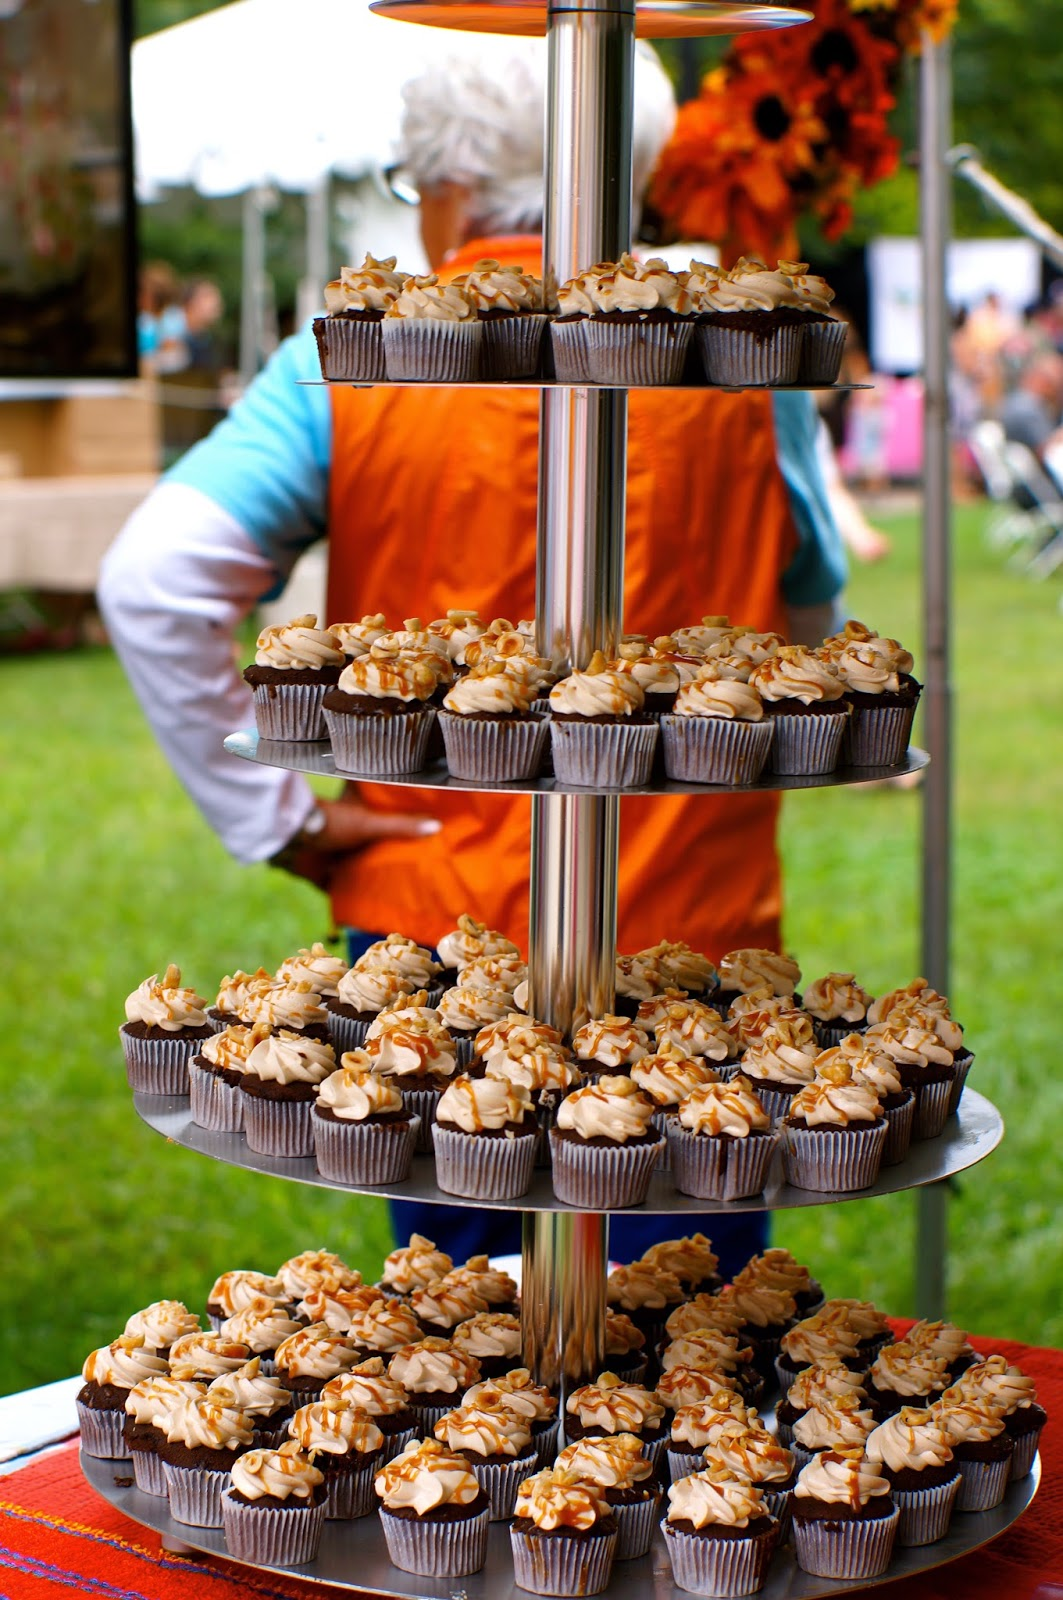 Old City Buskers, Cupcakes in the Park, Market Square Farmers Market, Krutch Park, Helen McNabb, Gigi's Southern Comfort Cupcake,